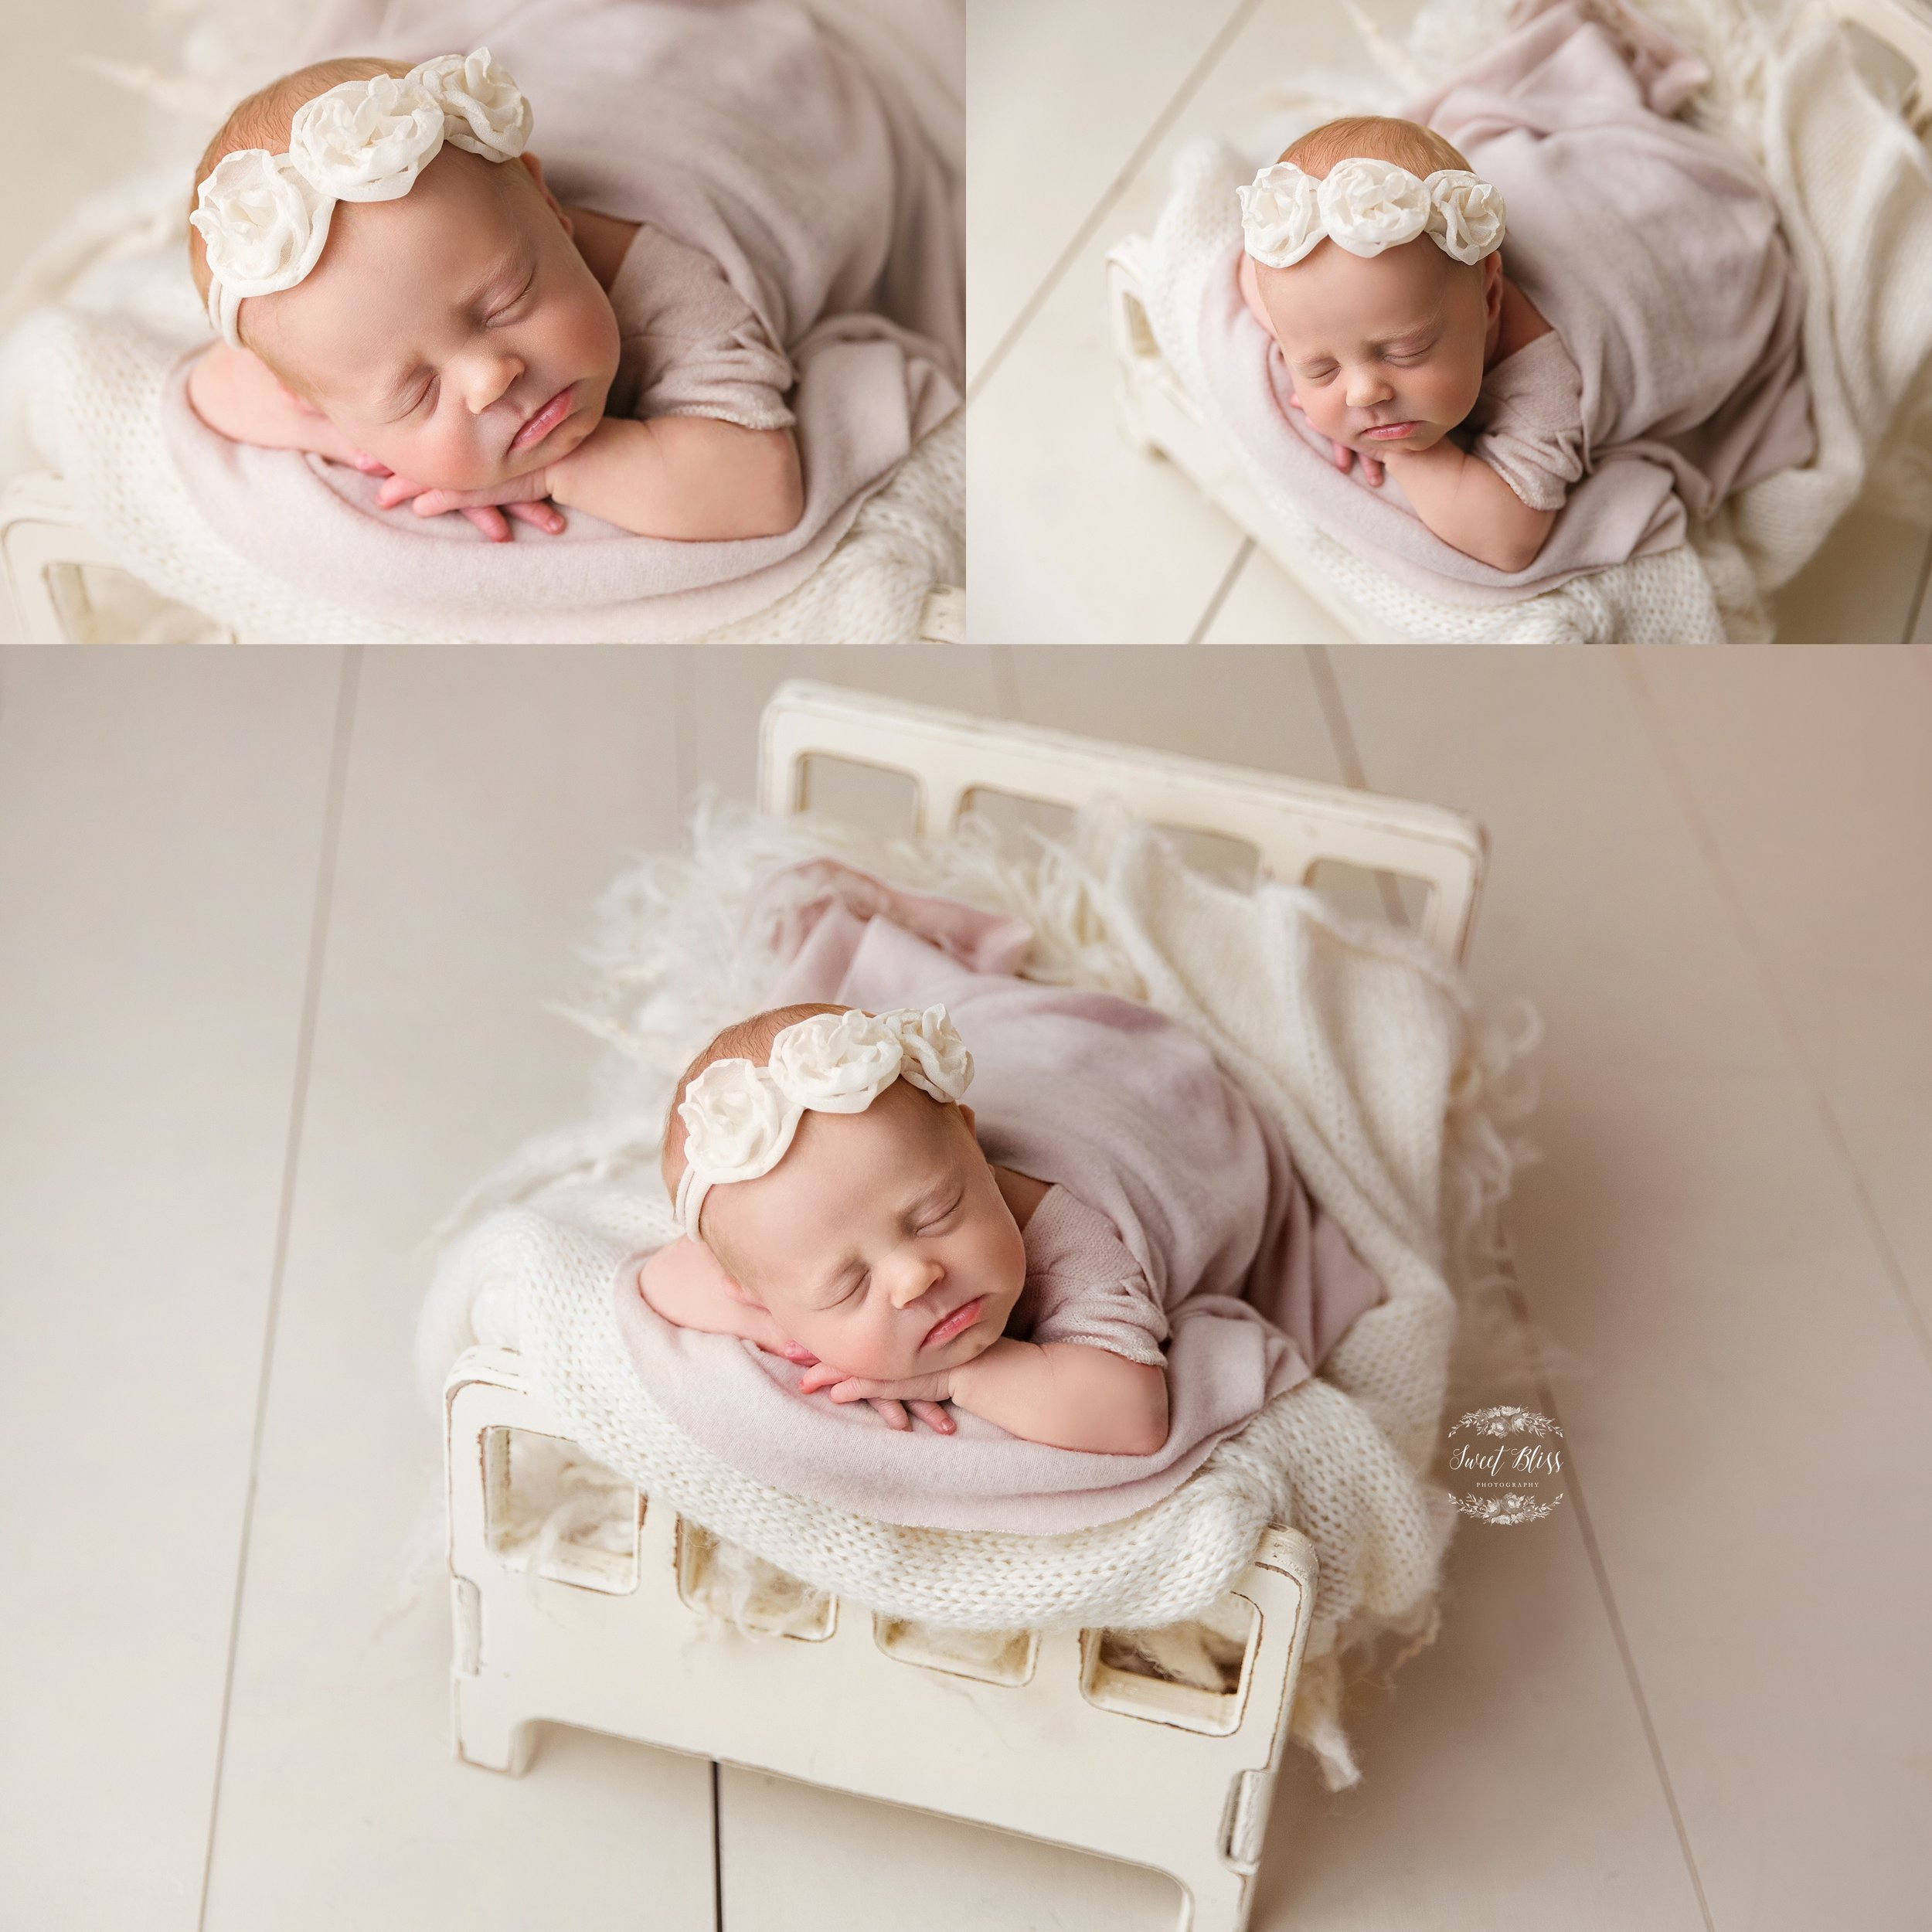 marylandnewbornbaby_sweetblissphoto_baltimorenewbornphotographer.jpg